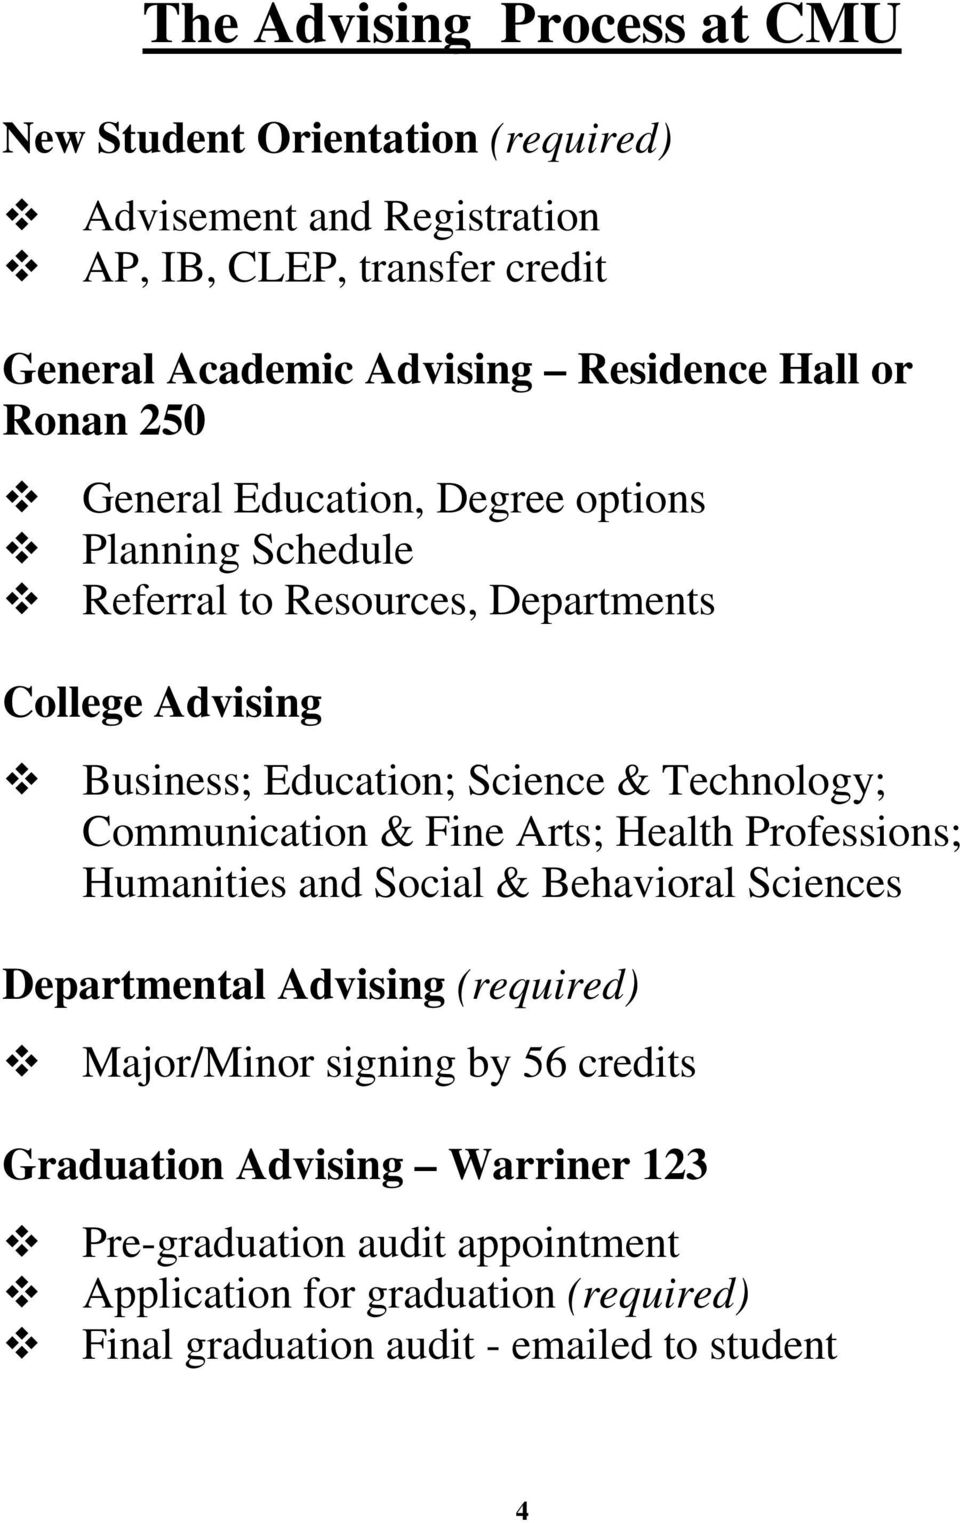 Technology; Communication & Fine Arts; Health Professions; Humanities and Social & Behavioral Sciences Departmental Advising (required) Major/Minor signing